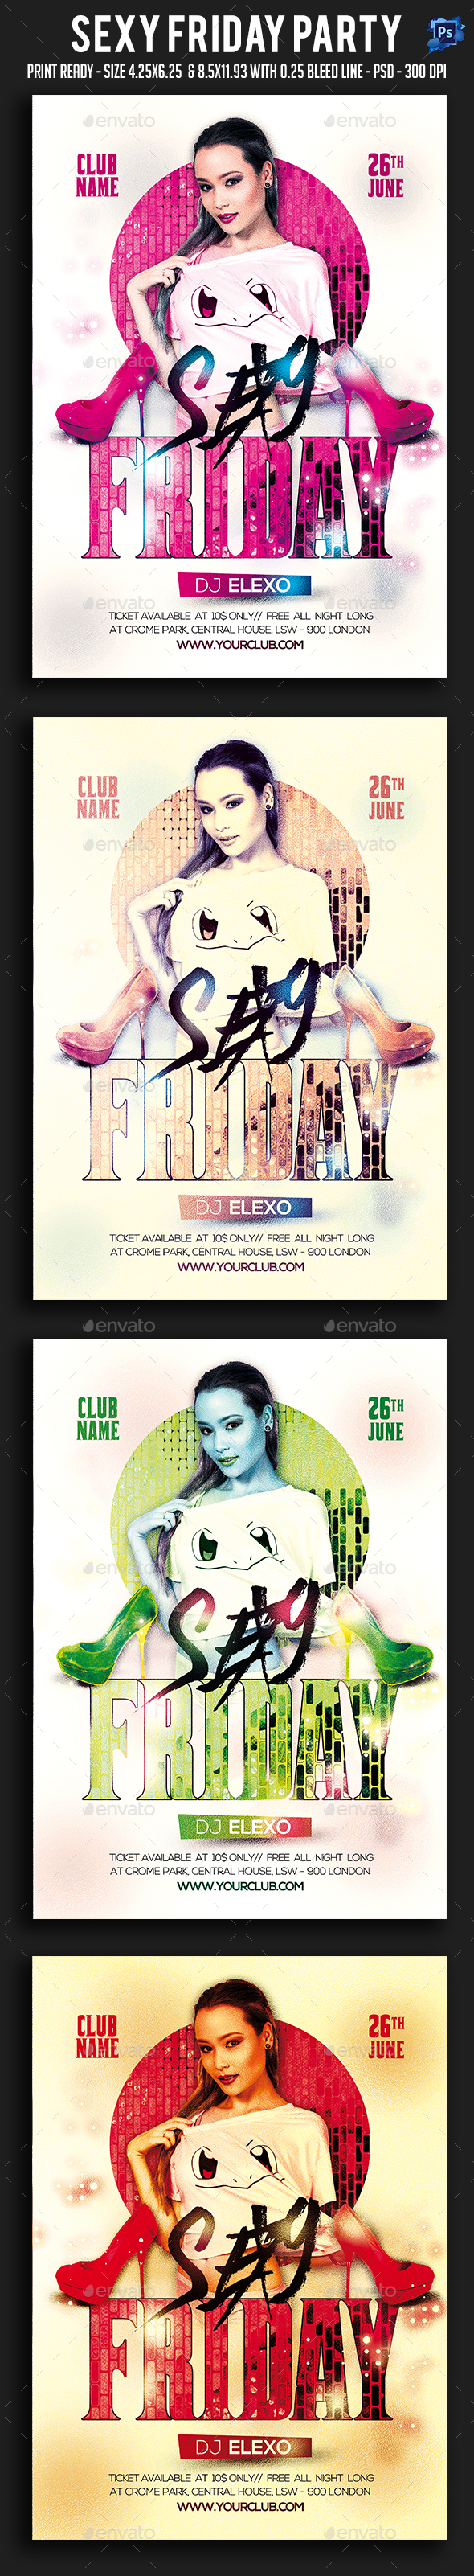 Sexy Friday Party Flyer